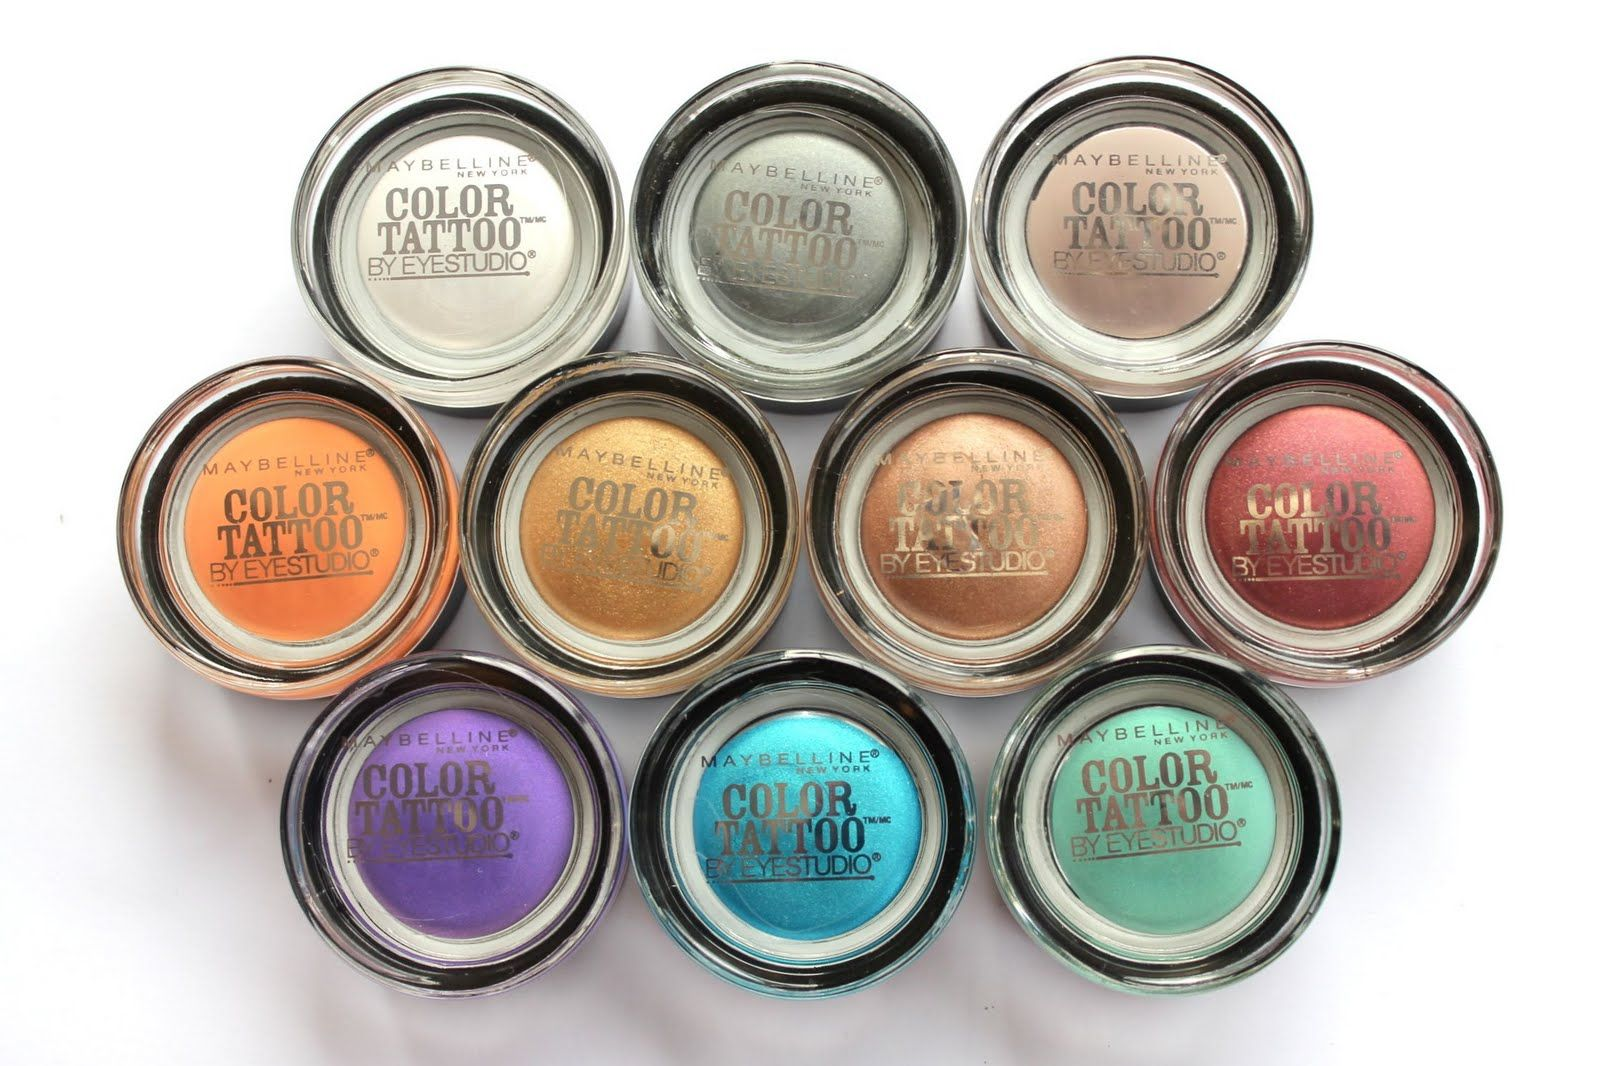 Review For Maybelline Color Tattoo 24 Hour Cream Eyeshadow Maybelline Color Tattoo Color Tattoo Eyeshadow Tattoo Eyeshadow